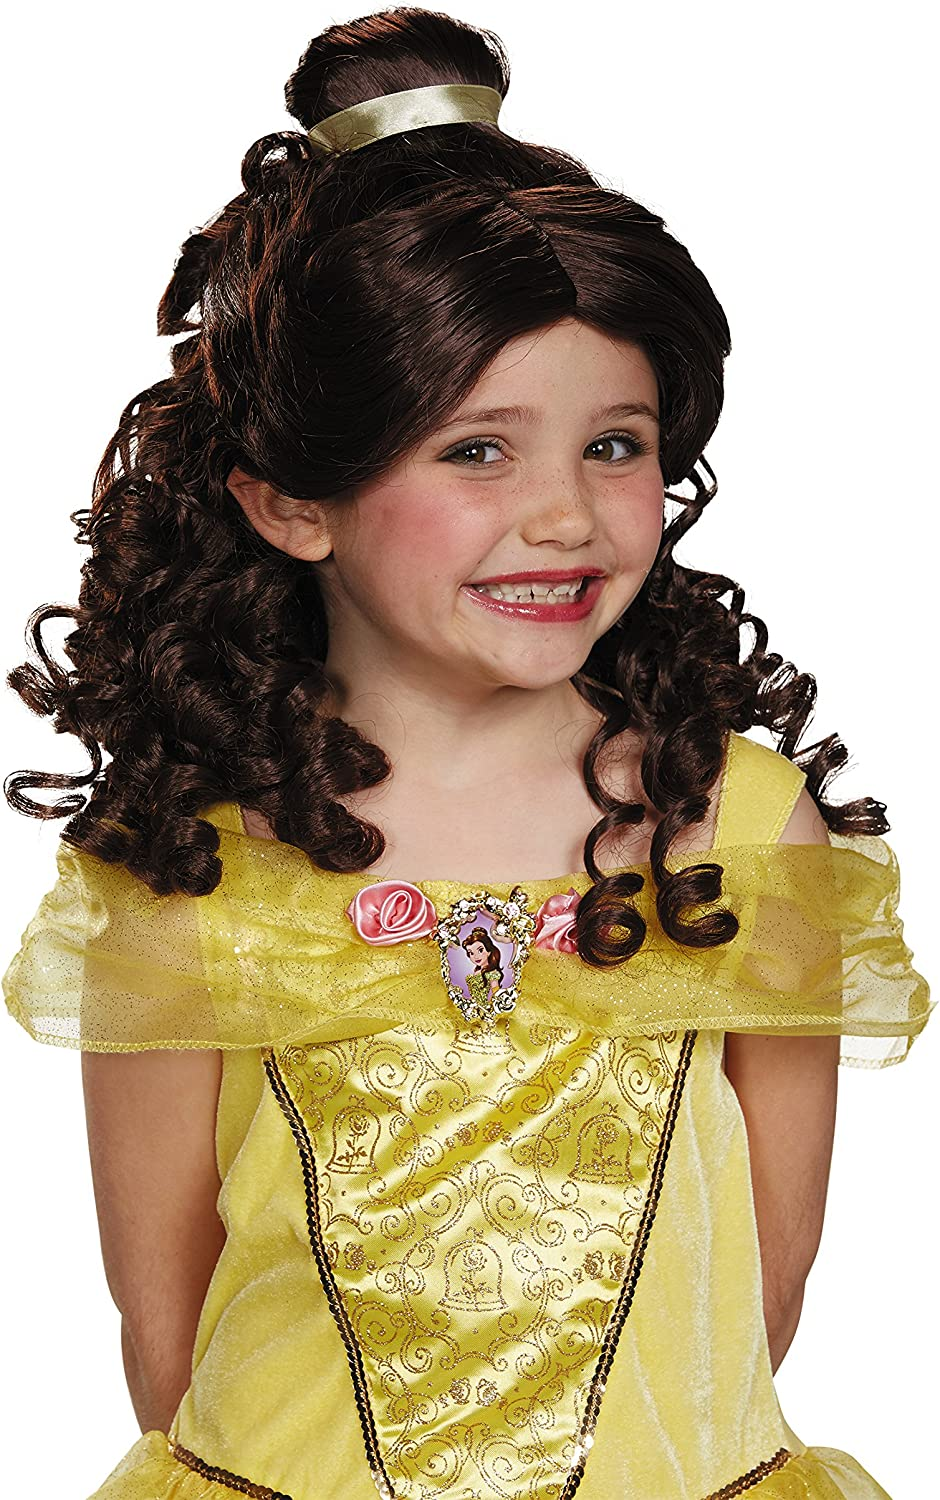 Disney Princess Belle Beauty & the Beast Girls' Wig : Clothing, Shoes & Jewelry